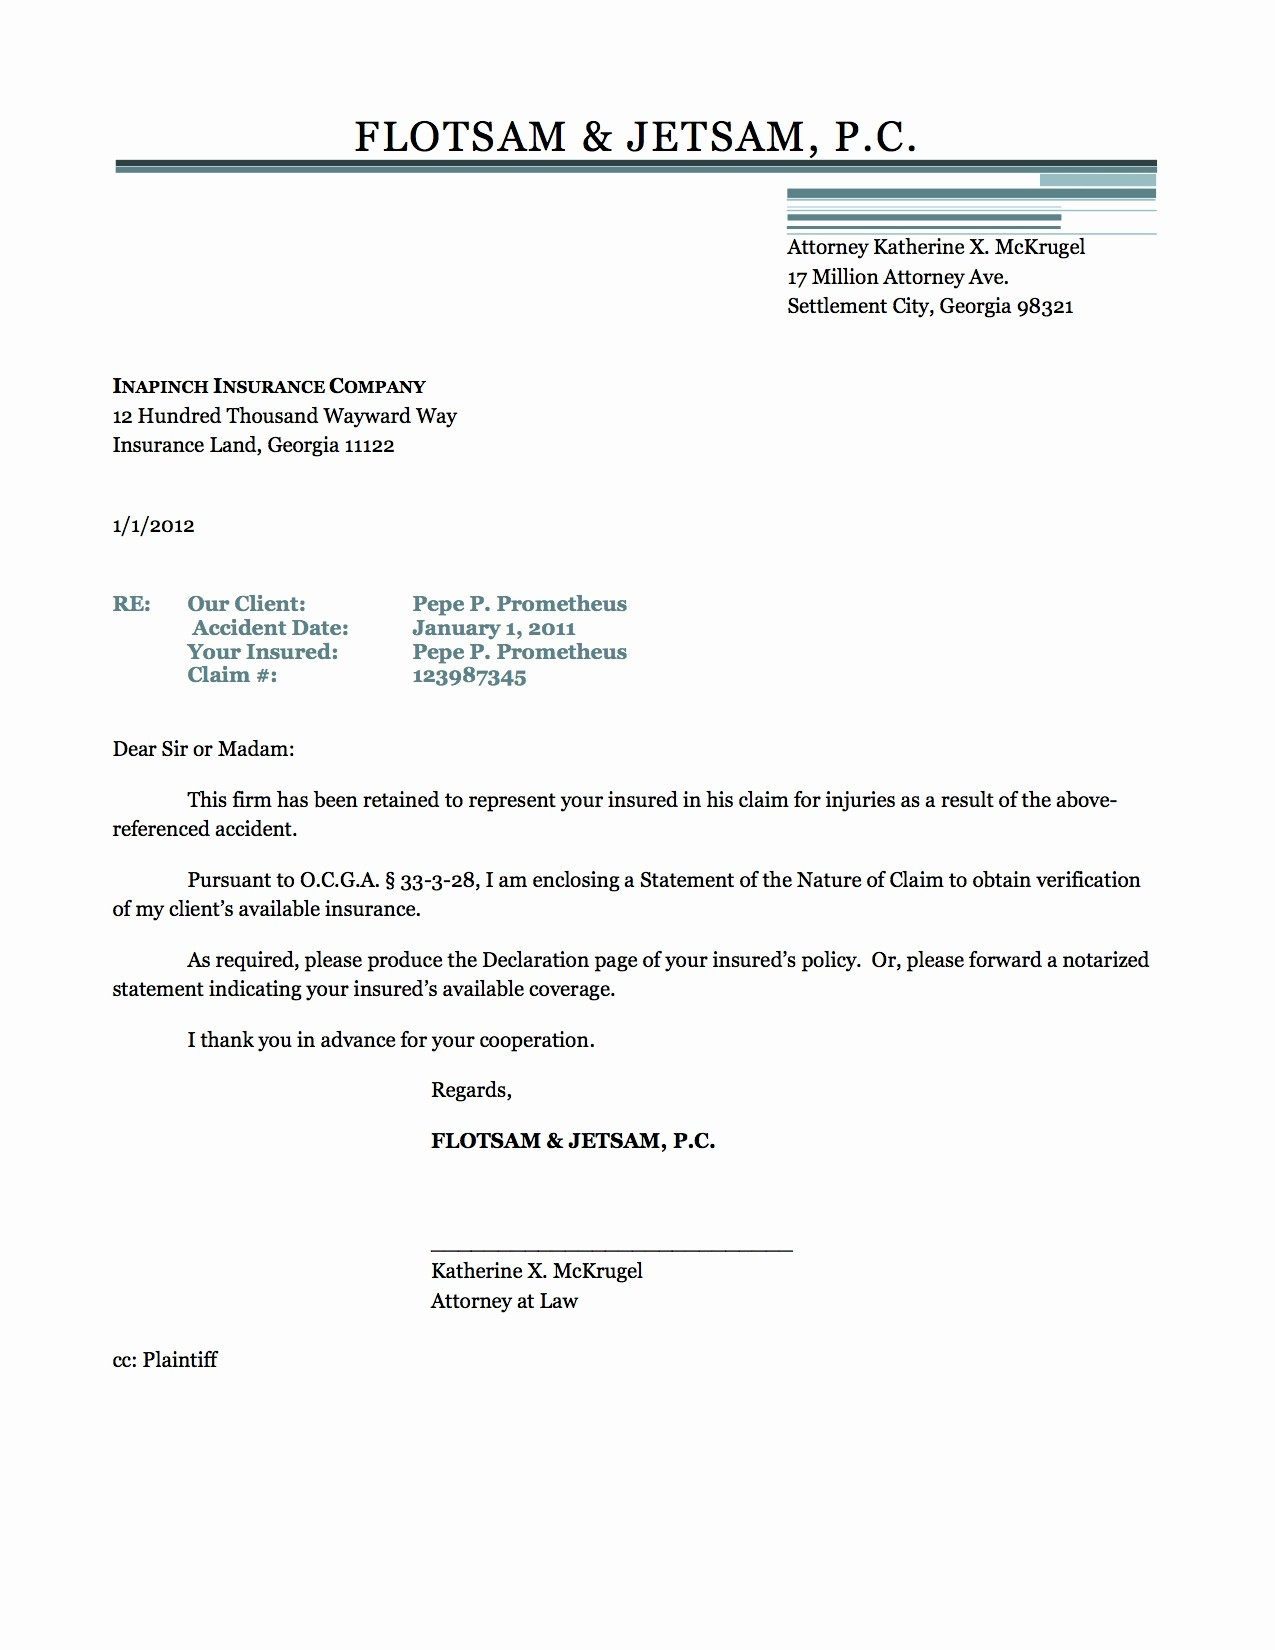 Insurance Demand Letter Template - Letter format Doc New Cover Letter Template for Ppi Claim Copy